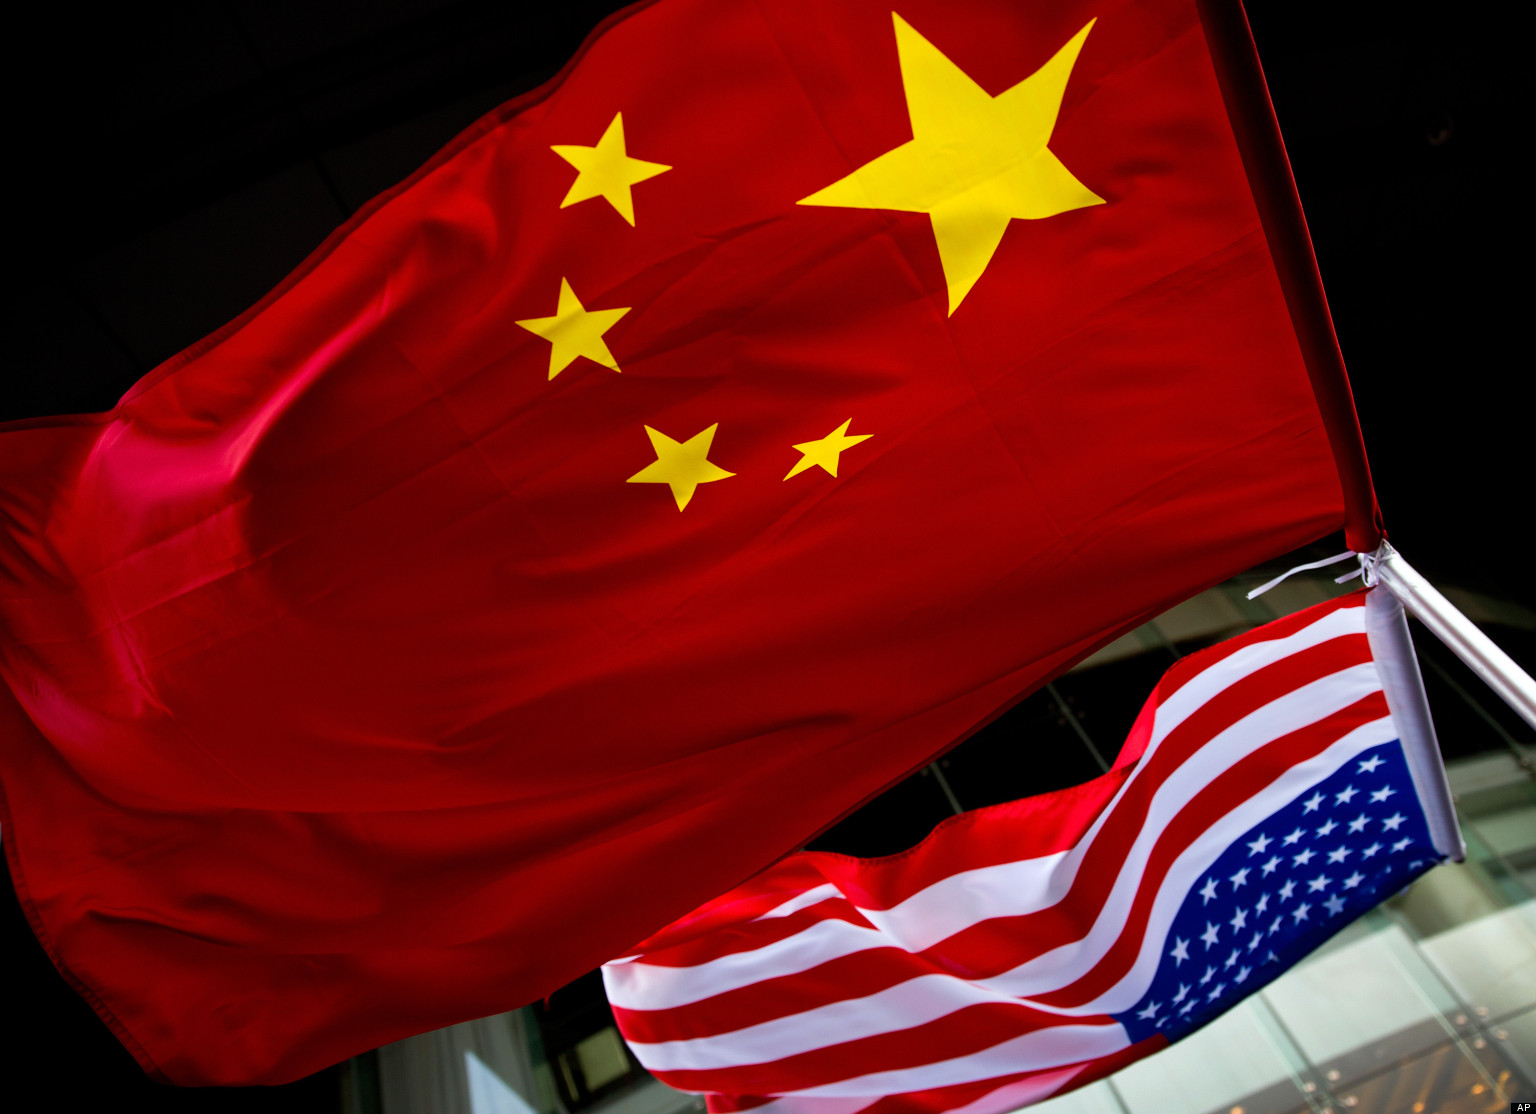 o-CHINA-US-CYBER-SECURITY-HACKING-facebook